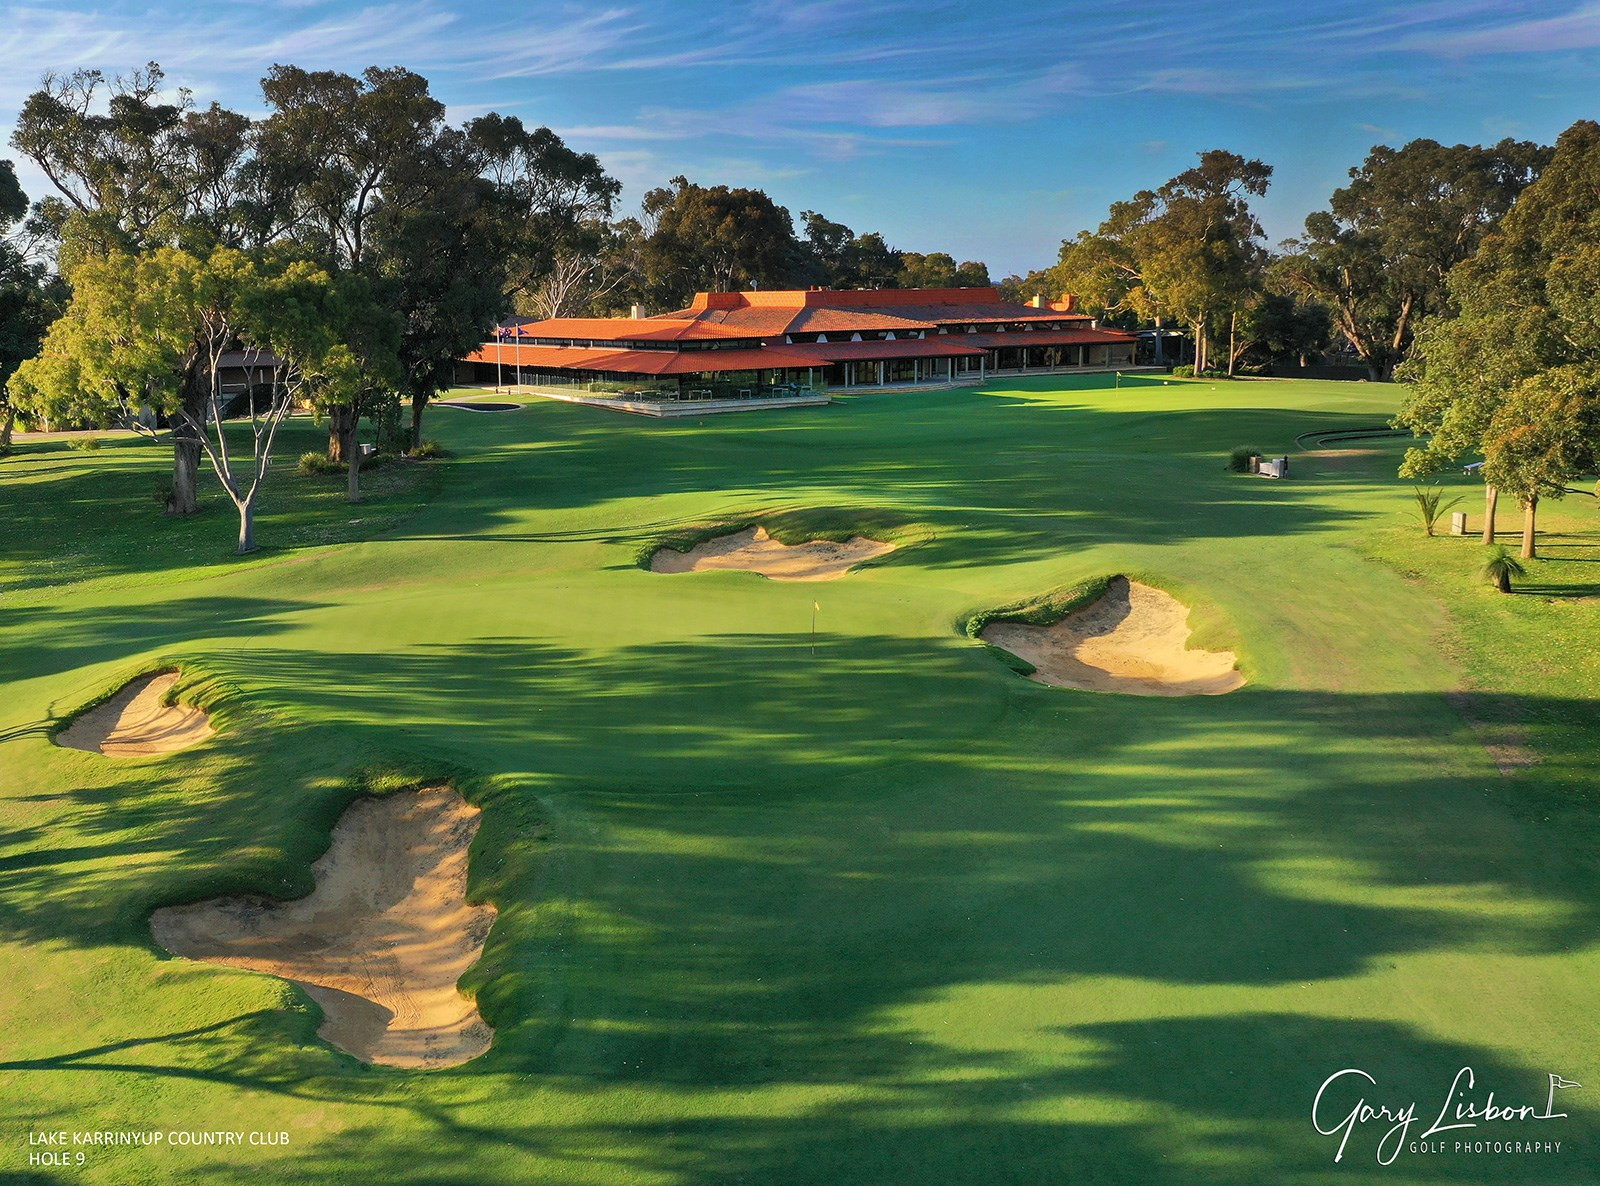 Lake Karrinyup Country Club Hole 9